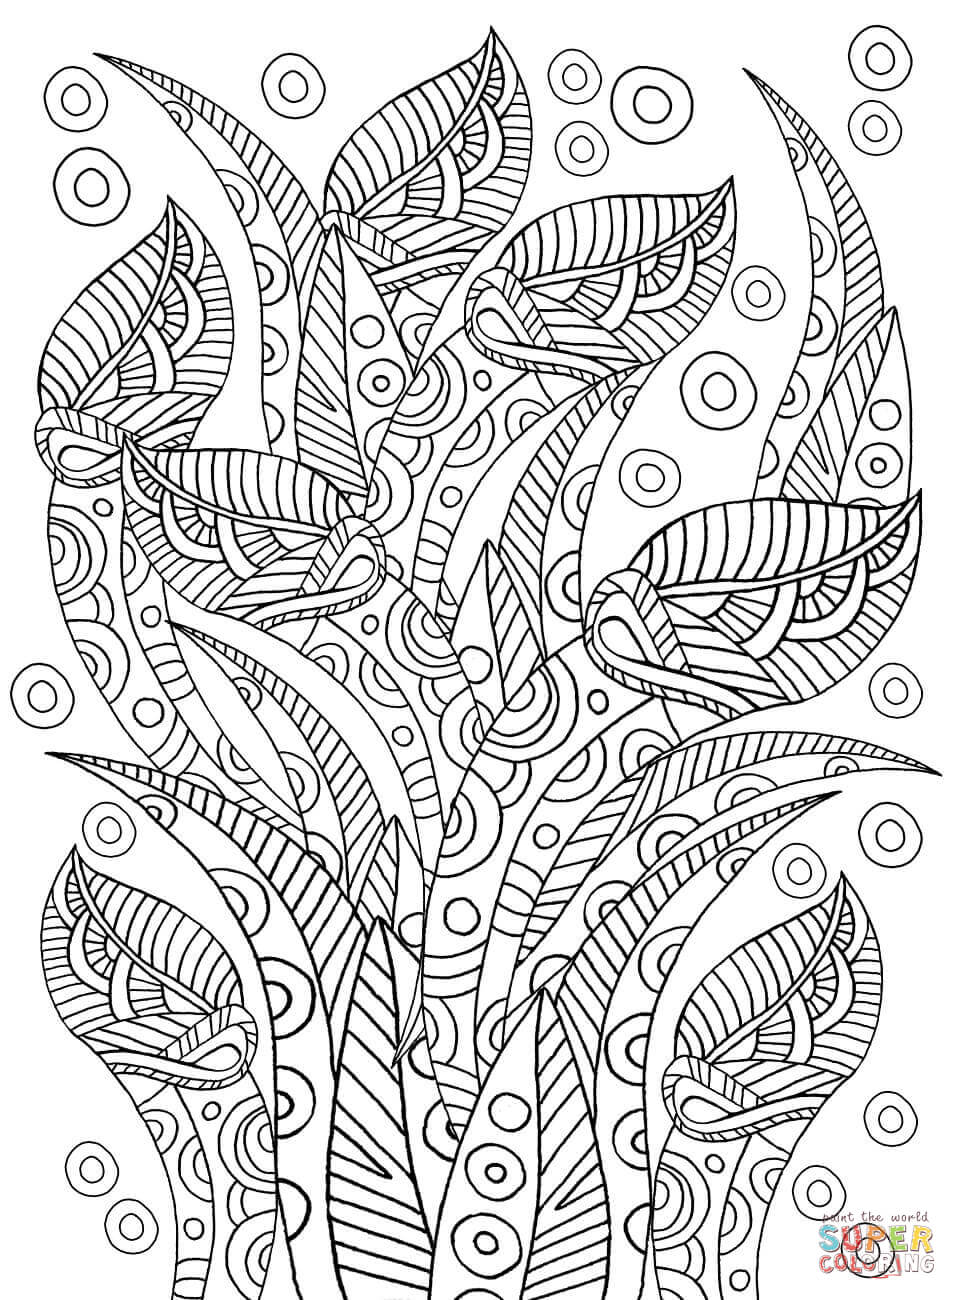 pattern colouring pages to print floral pattern coloring page free printable coloring pages pattern pages to print colouring